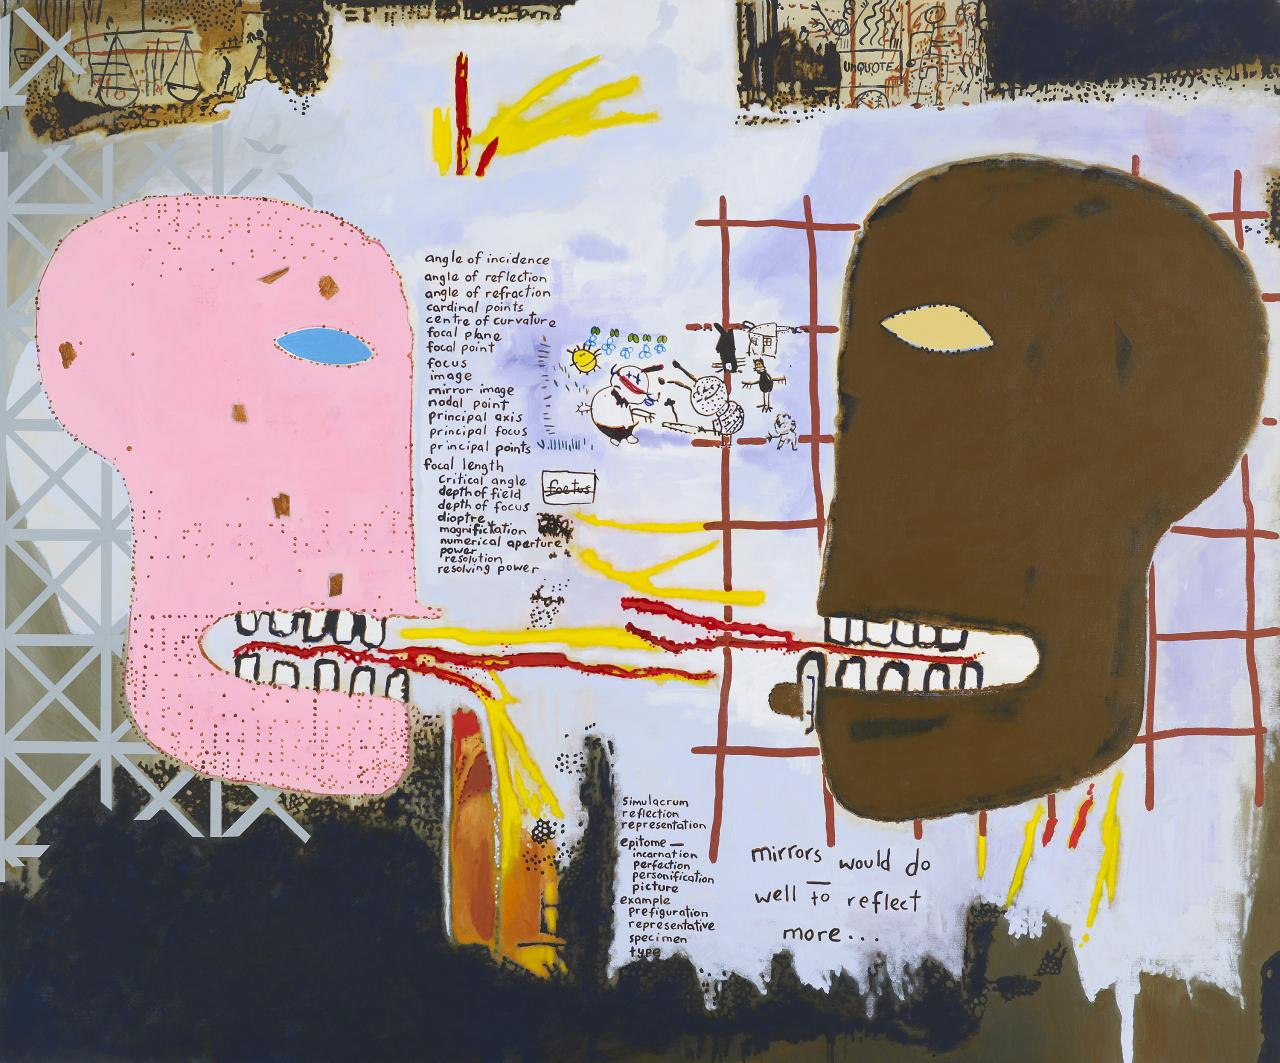 Notes to Basquiat: Double vision